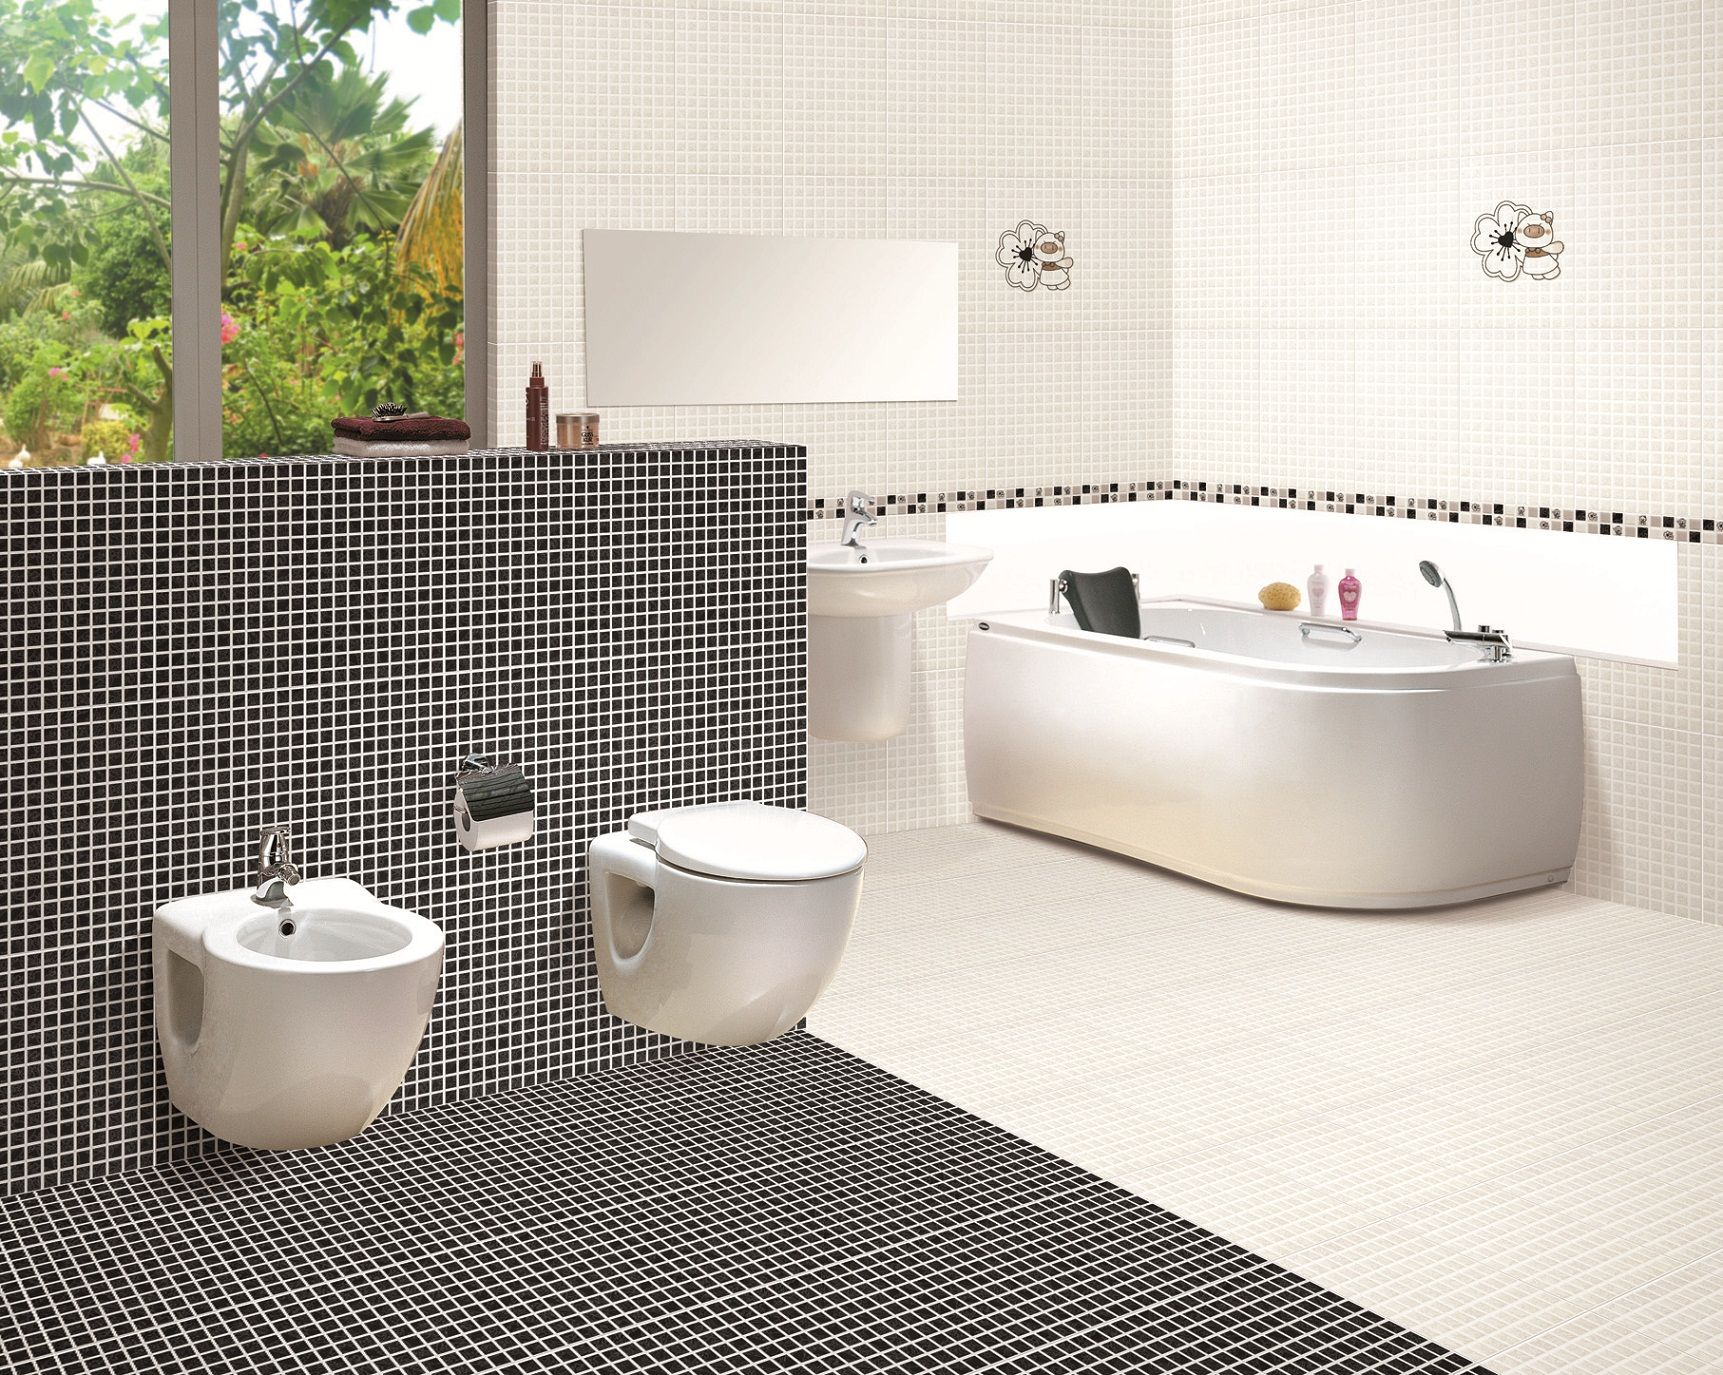 Bathroom Tile Ideas Mosaic lovable dark mosaic tile floor pattern for traditional looking